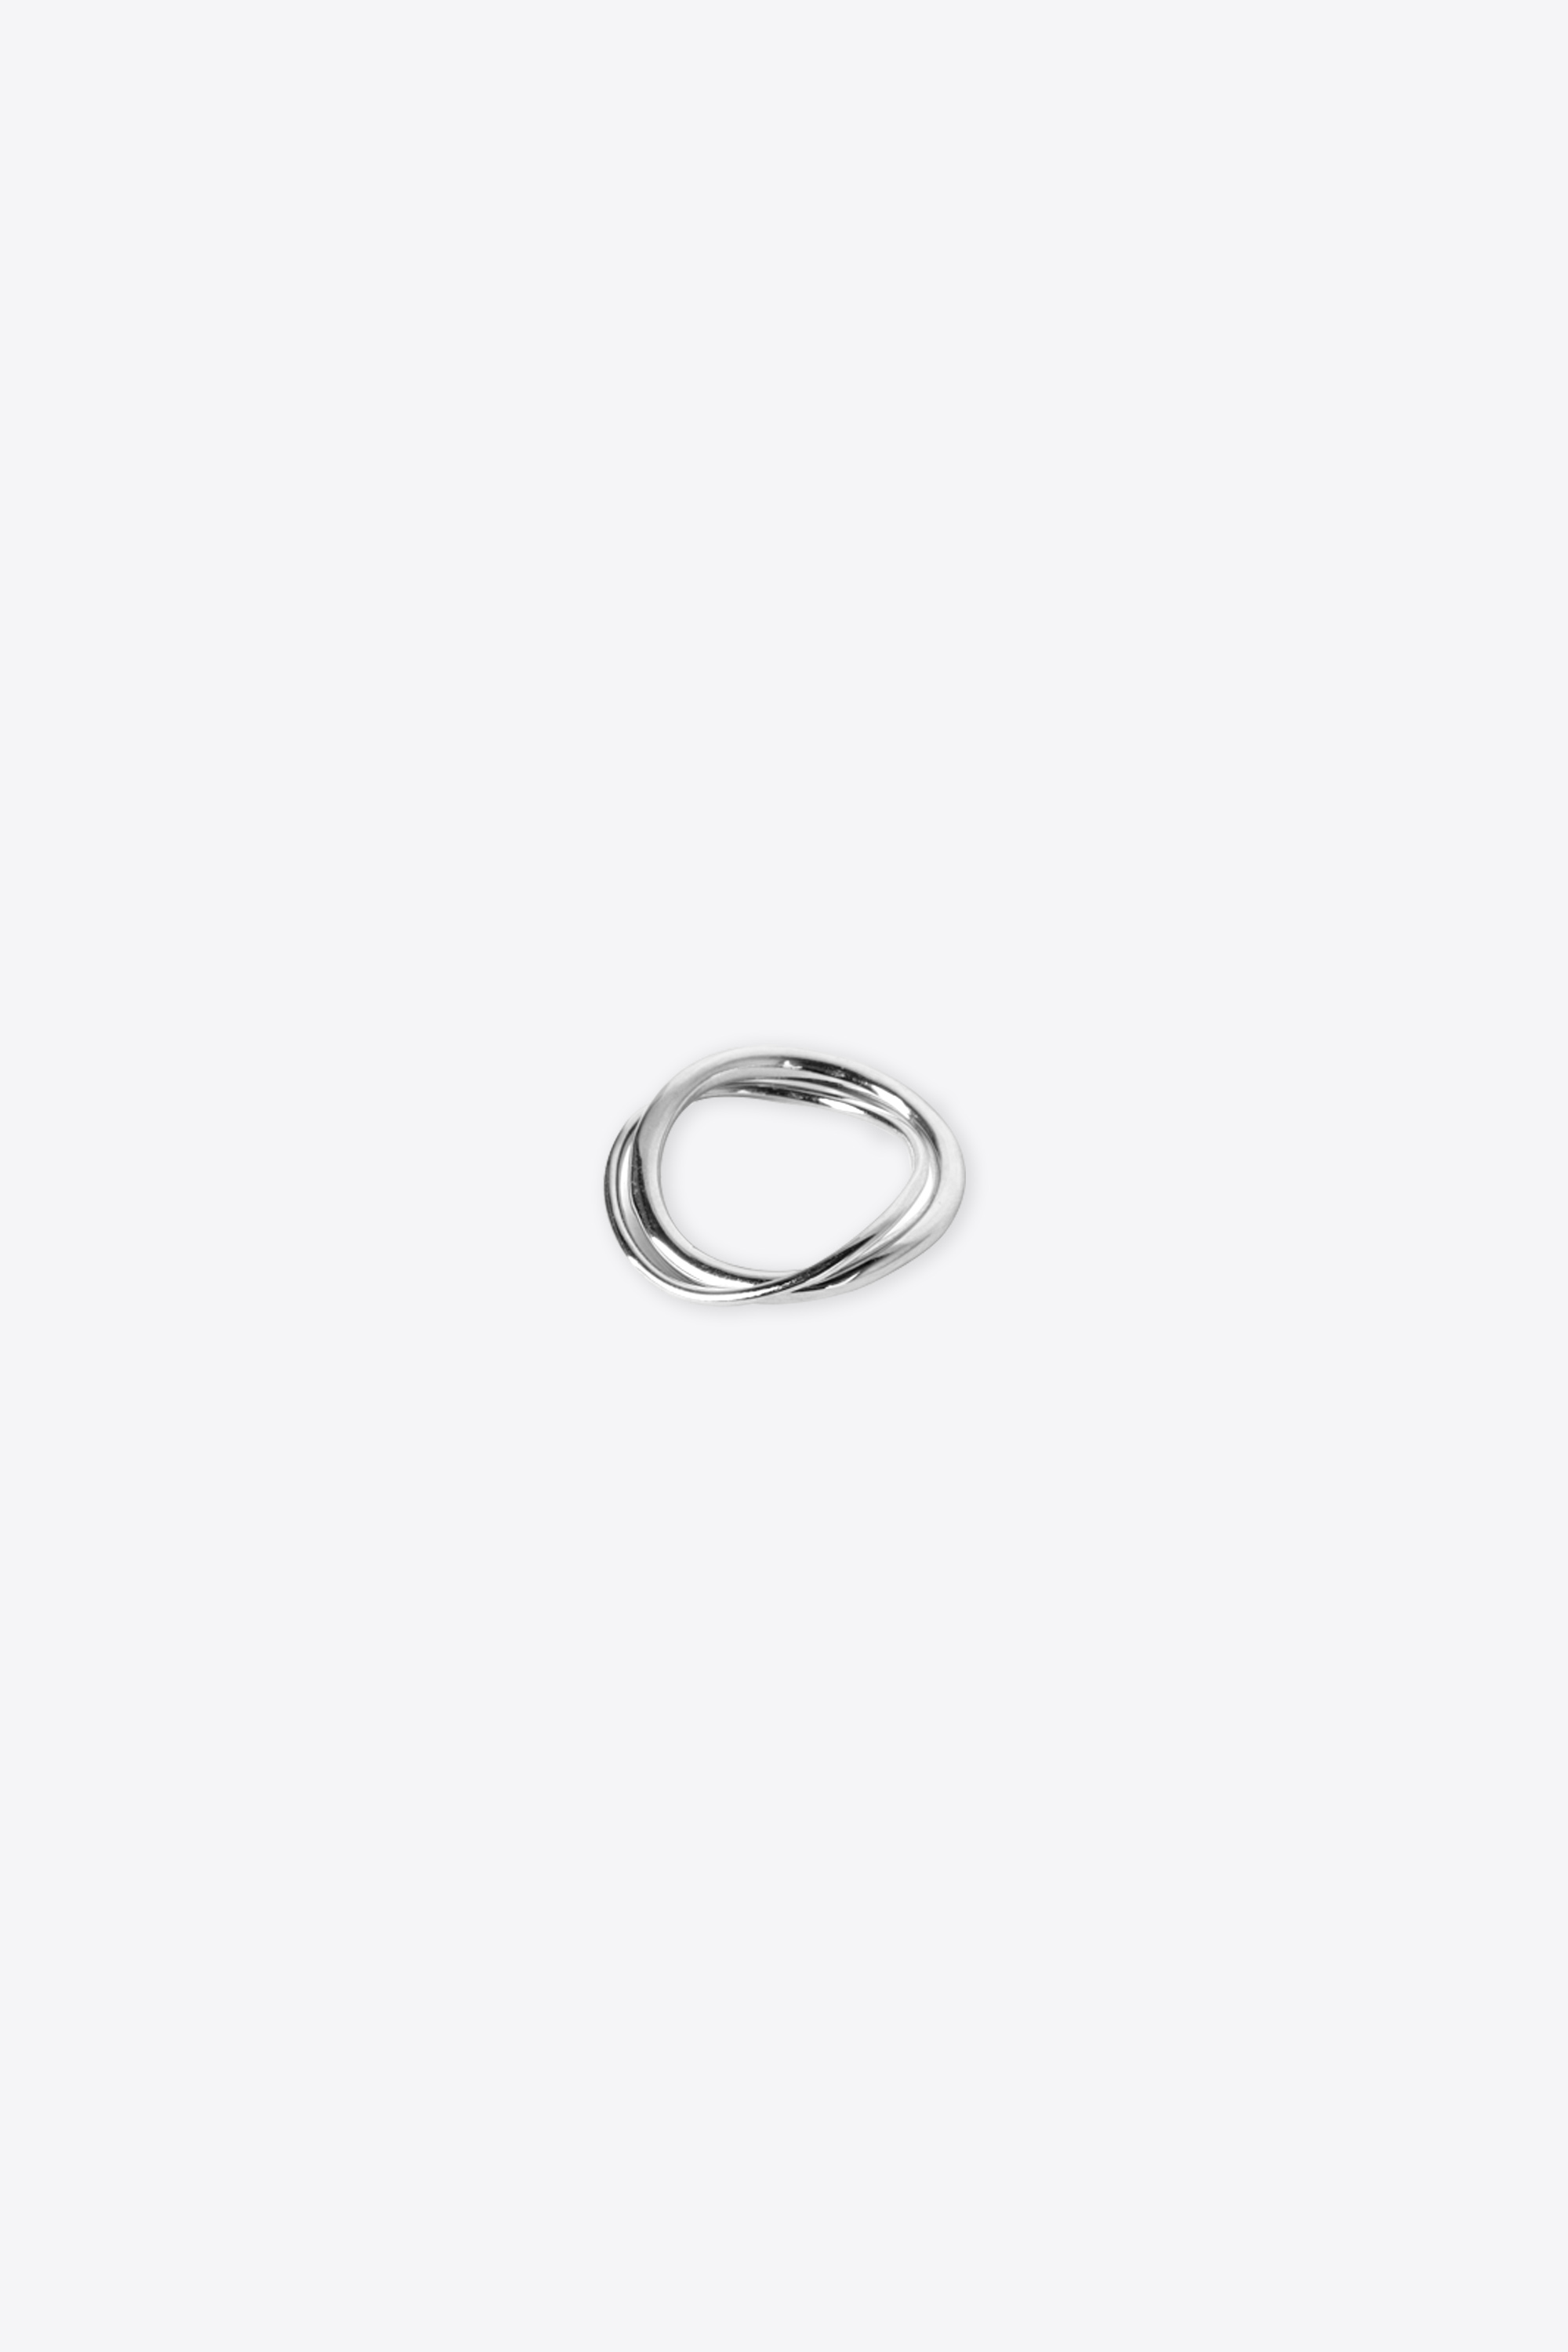 Ring H071 Silver 3